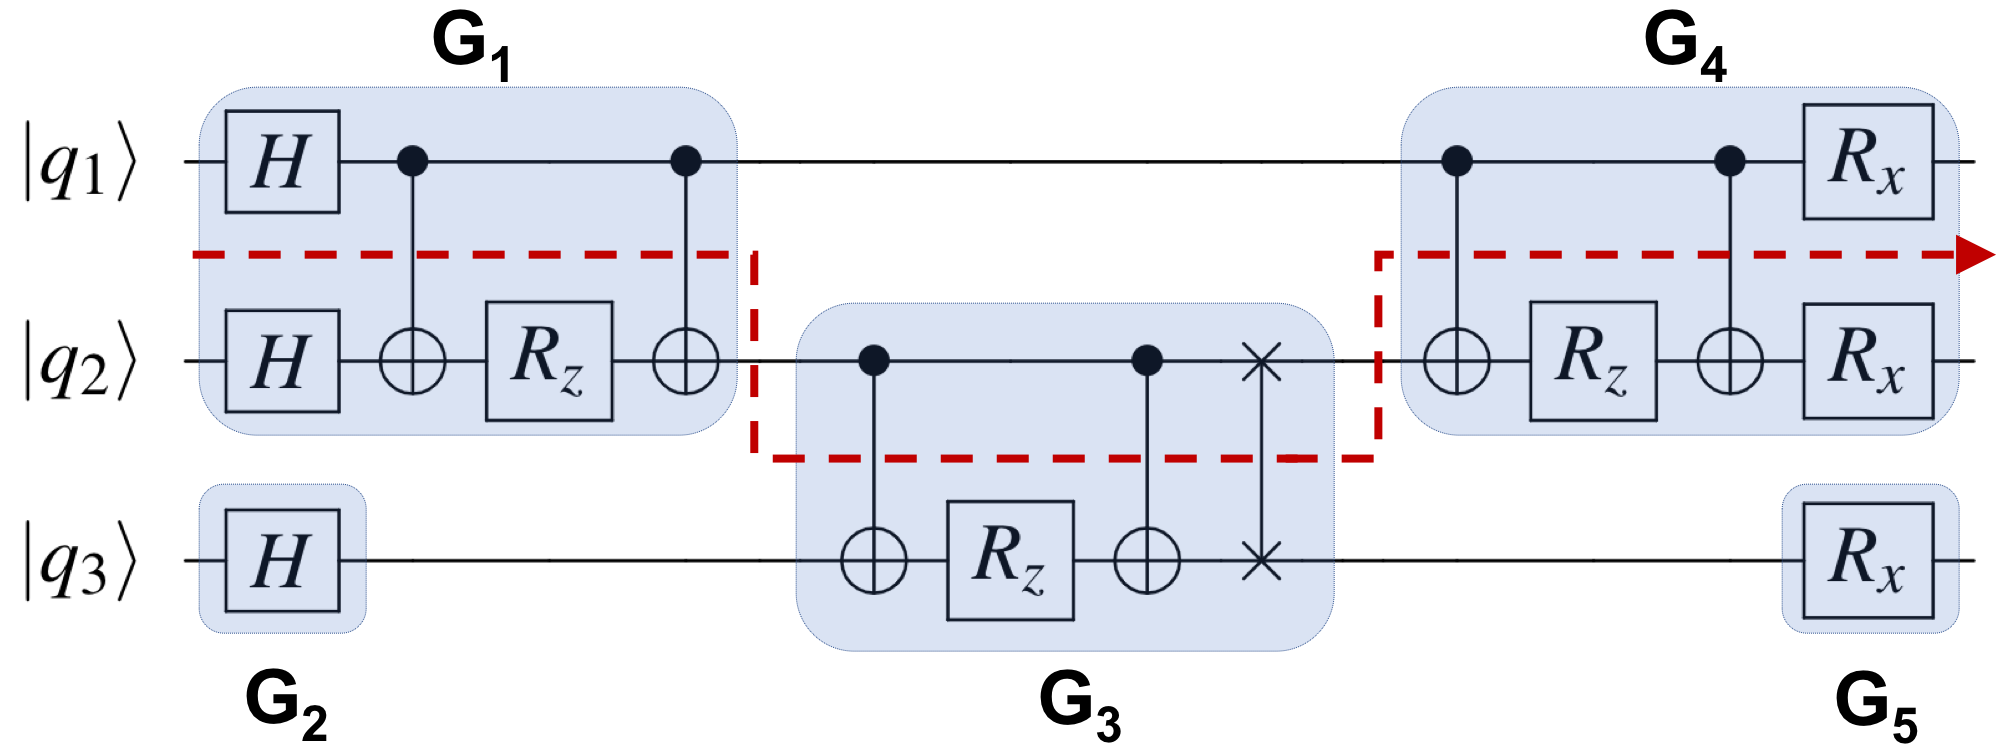 Circuit with aggregated instructions